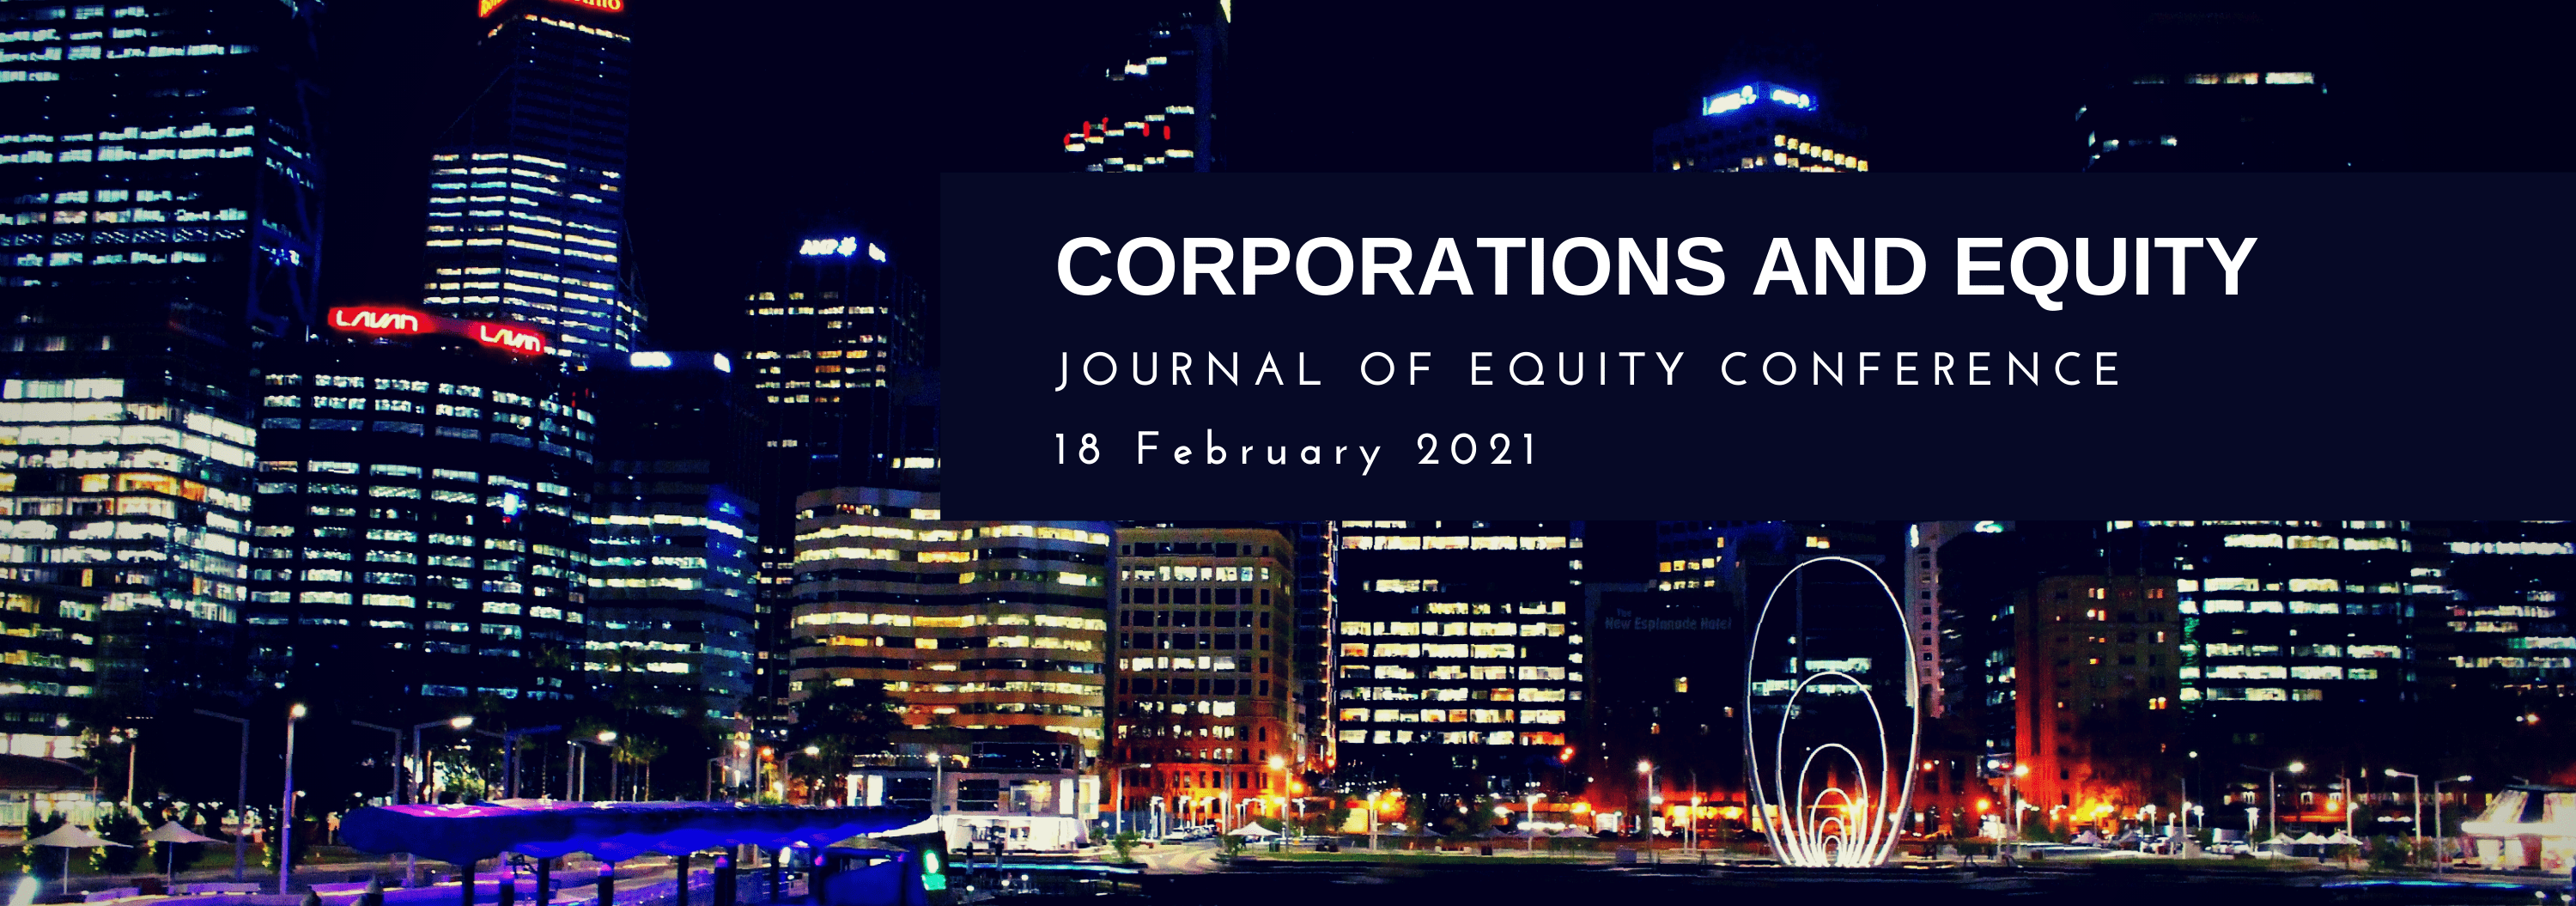 Corporations and Equity 2021 Conference Banner designed by Watermark Events Australia